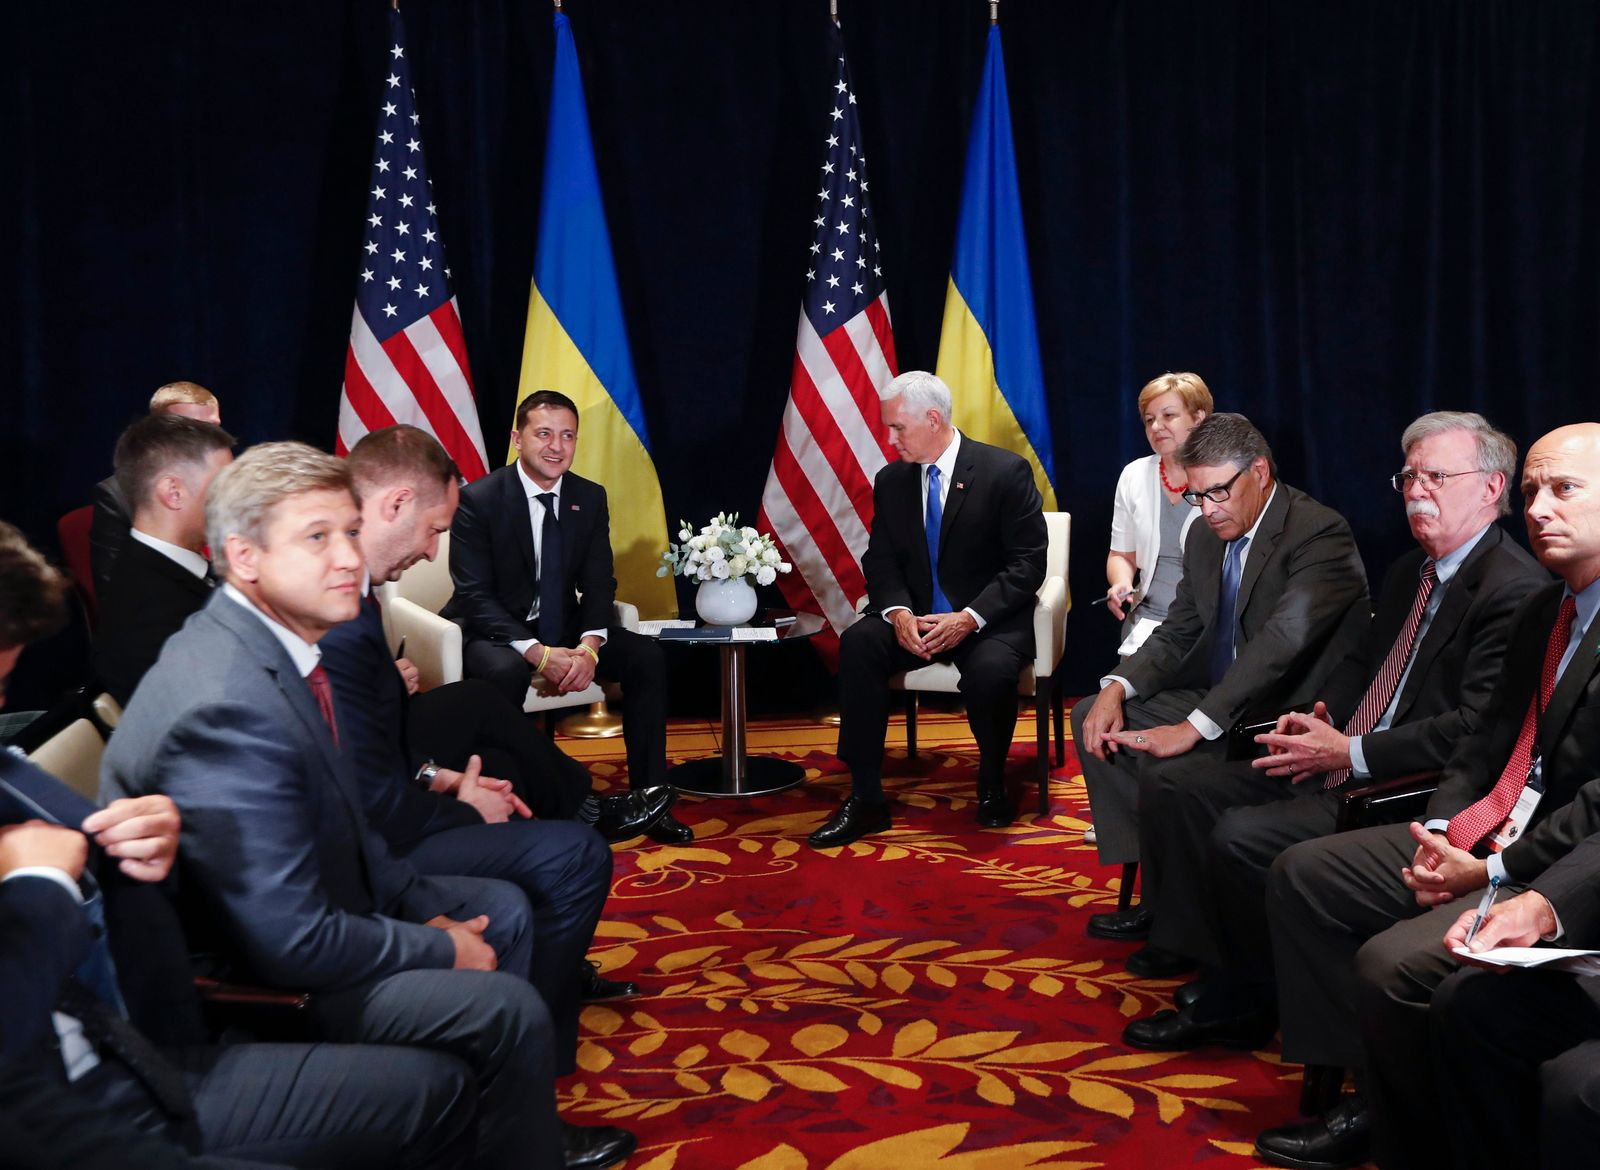 Ukraine's President Volodymyr Zelenskiy, left, sits next to U.S. Vice President Mike Pence, during a bilateral meeting in Warsaw, Poland, Sunday, Sept. 1, 2019. (AP Photo/Petr David Josek)